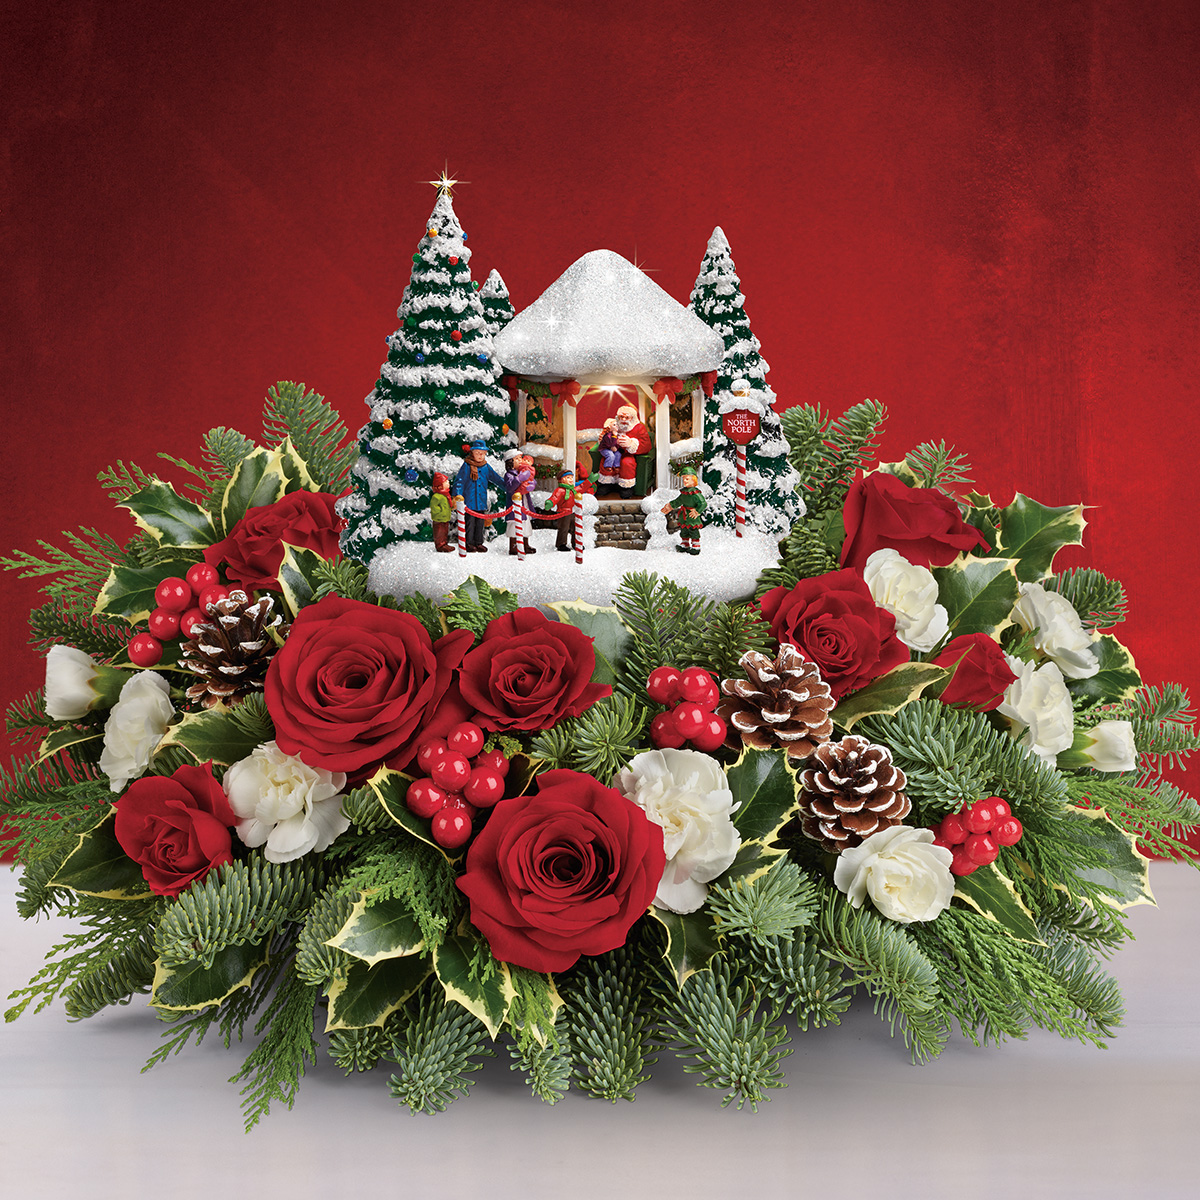 Teleflora Christmas 2020 Thomas Kinkade's Jolly Santa Bouquet by Teleflora Sweepstakes